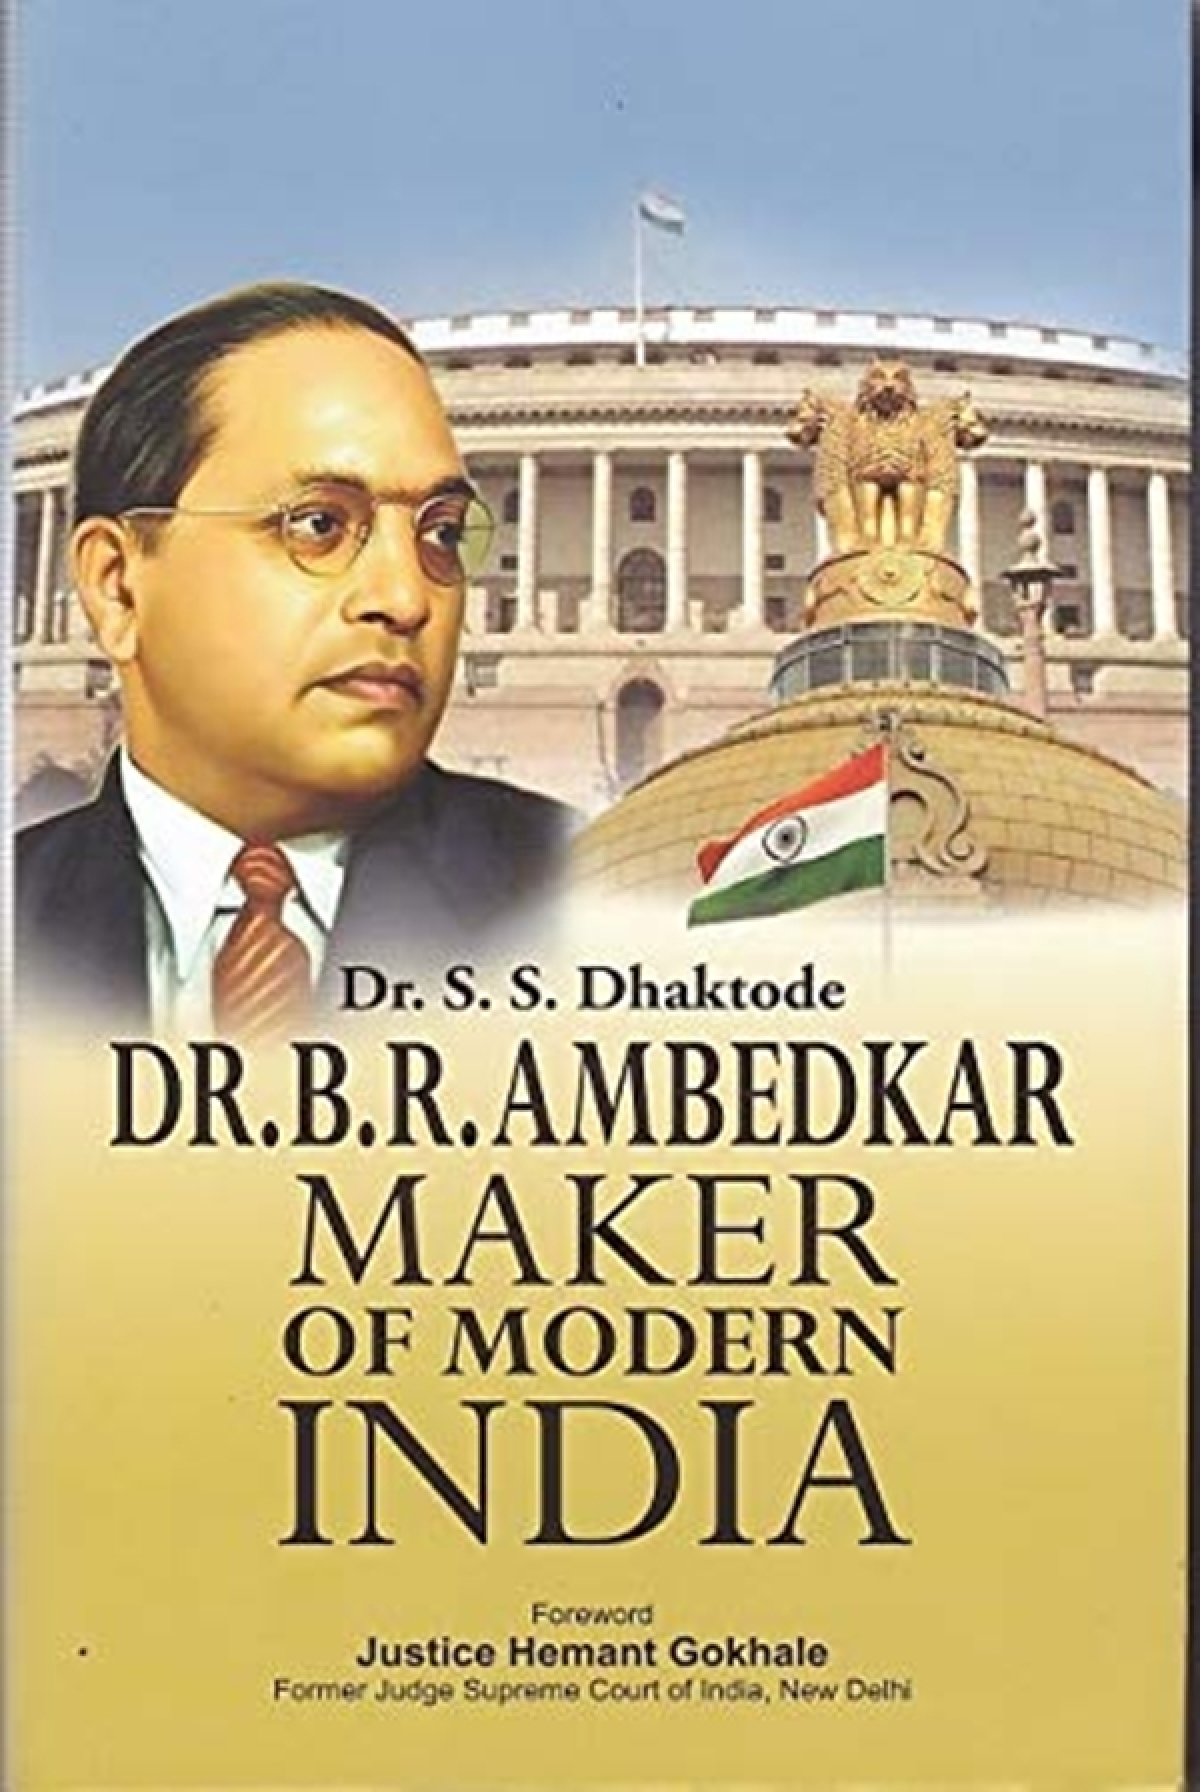 Book Review: Everything you need to know about Ambedkar